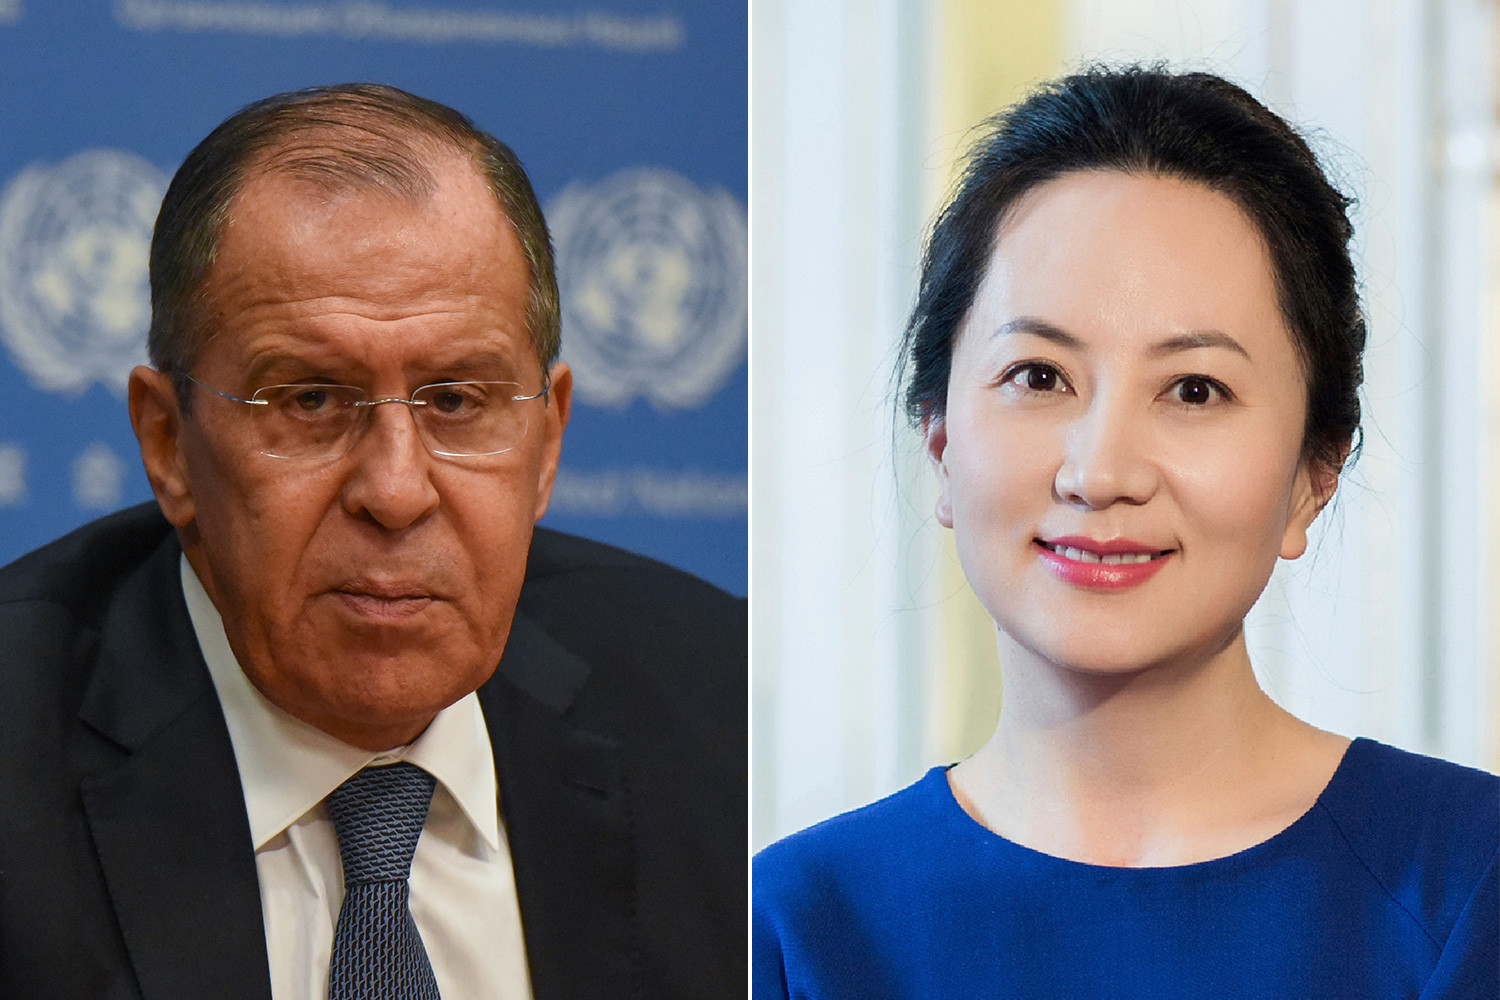 Russia says detention of Chinese executive shows US arrogance